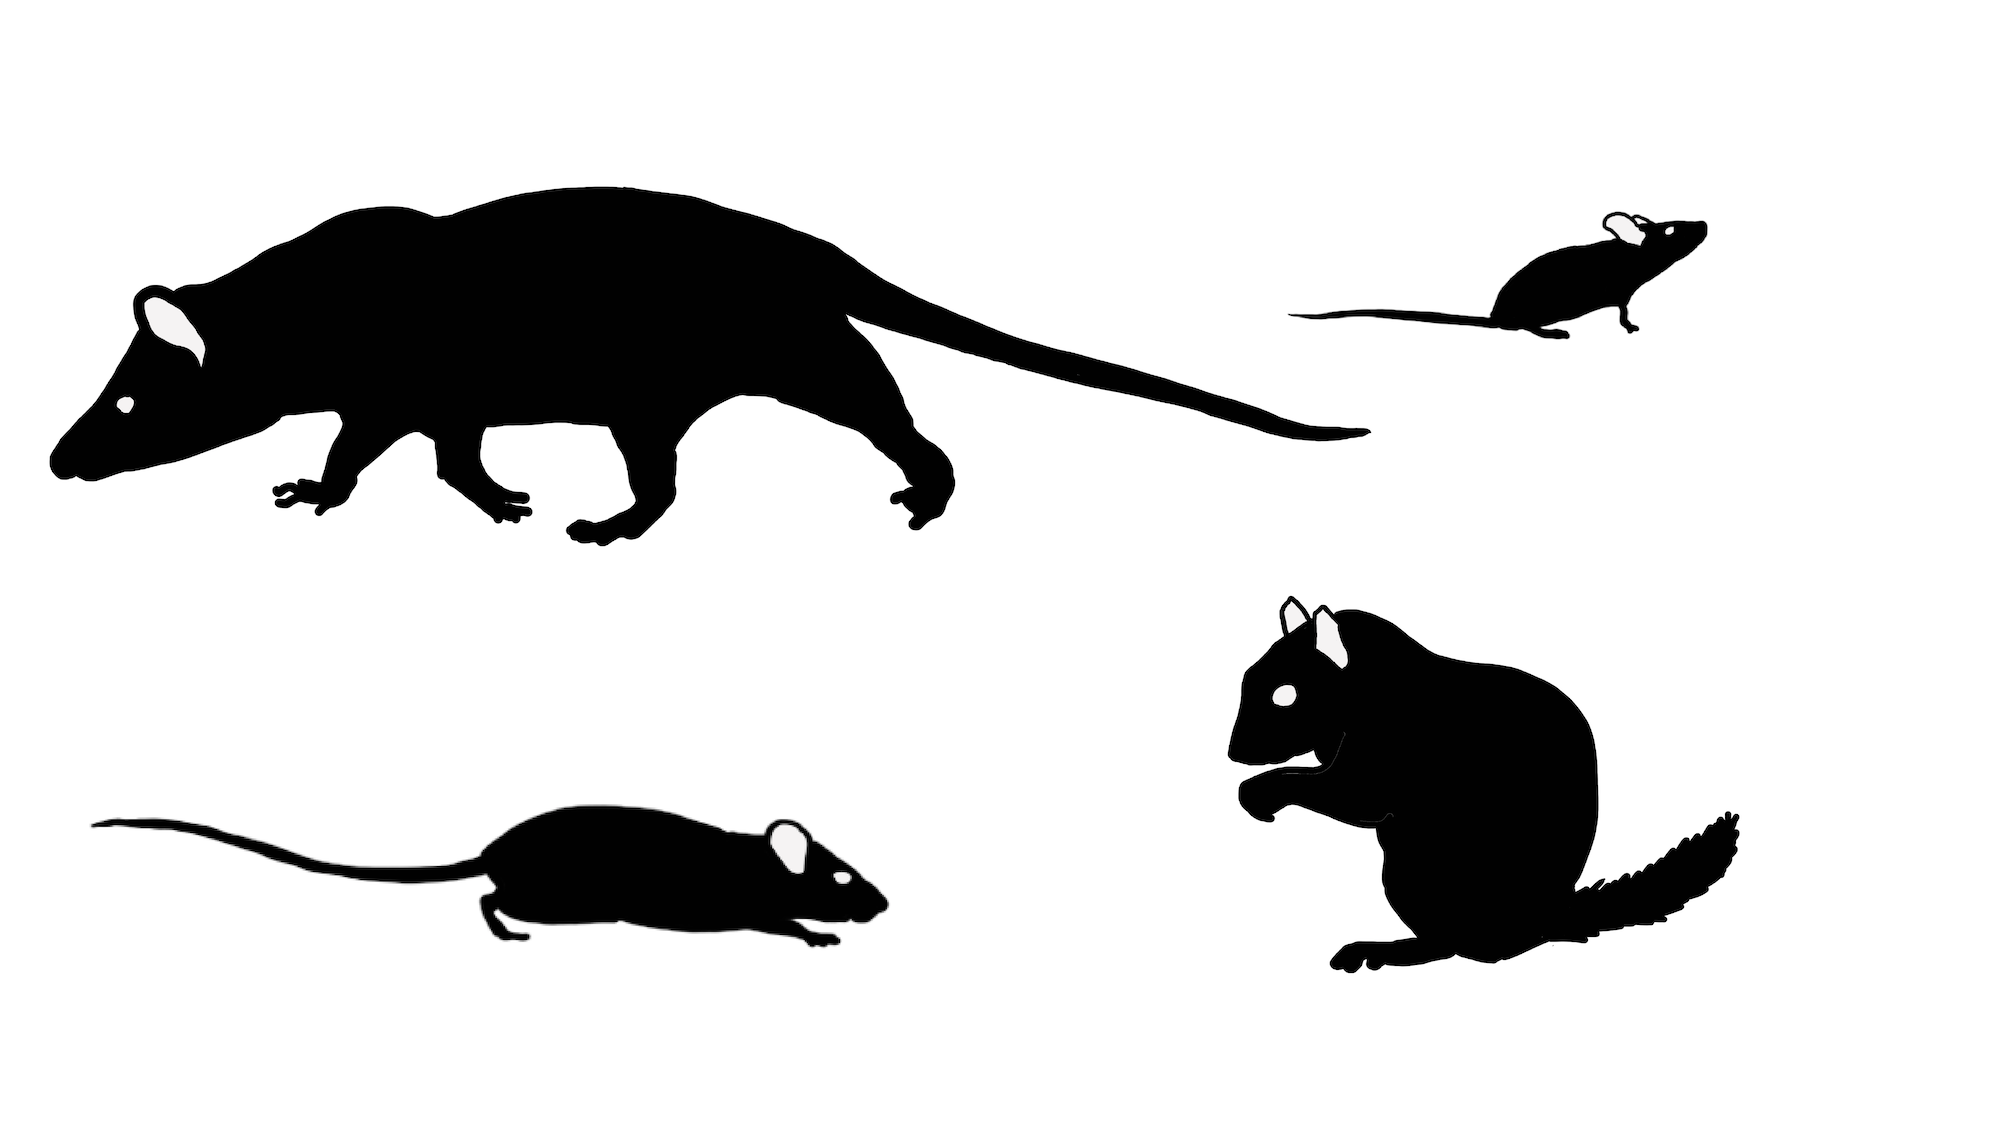 Side black silhouettes of four animals. An opossum, a mouse, a rat, and a squirrel